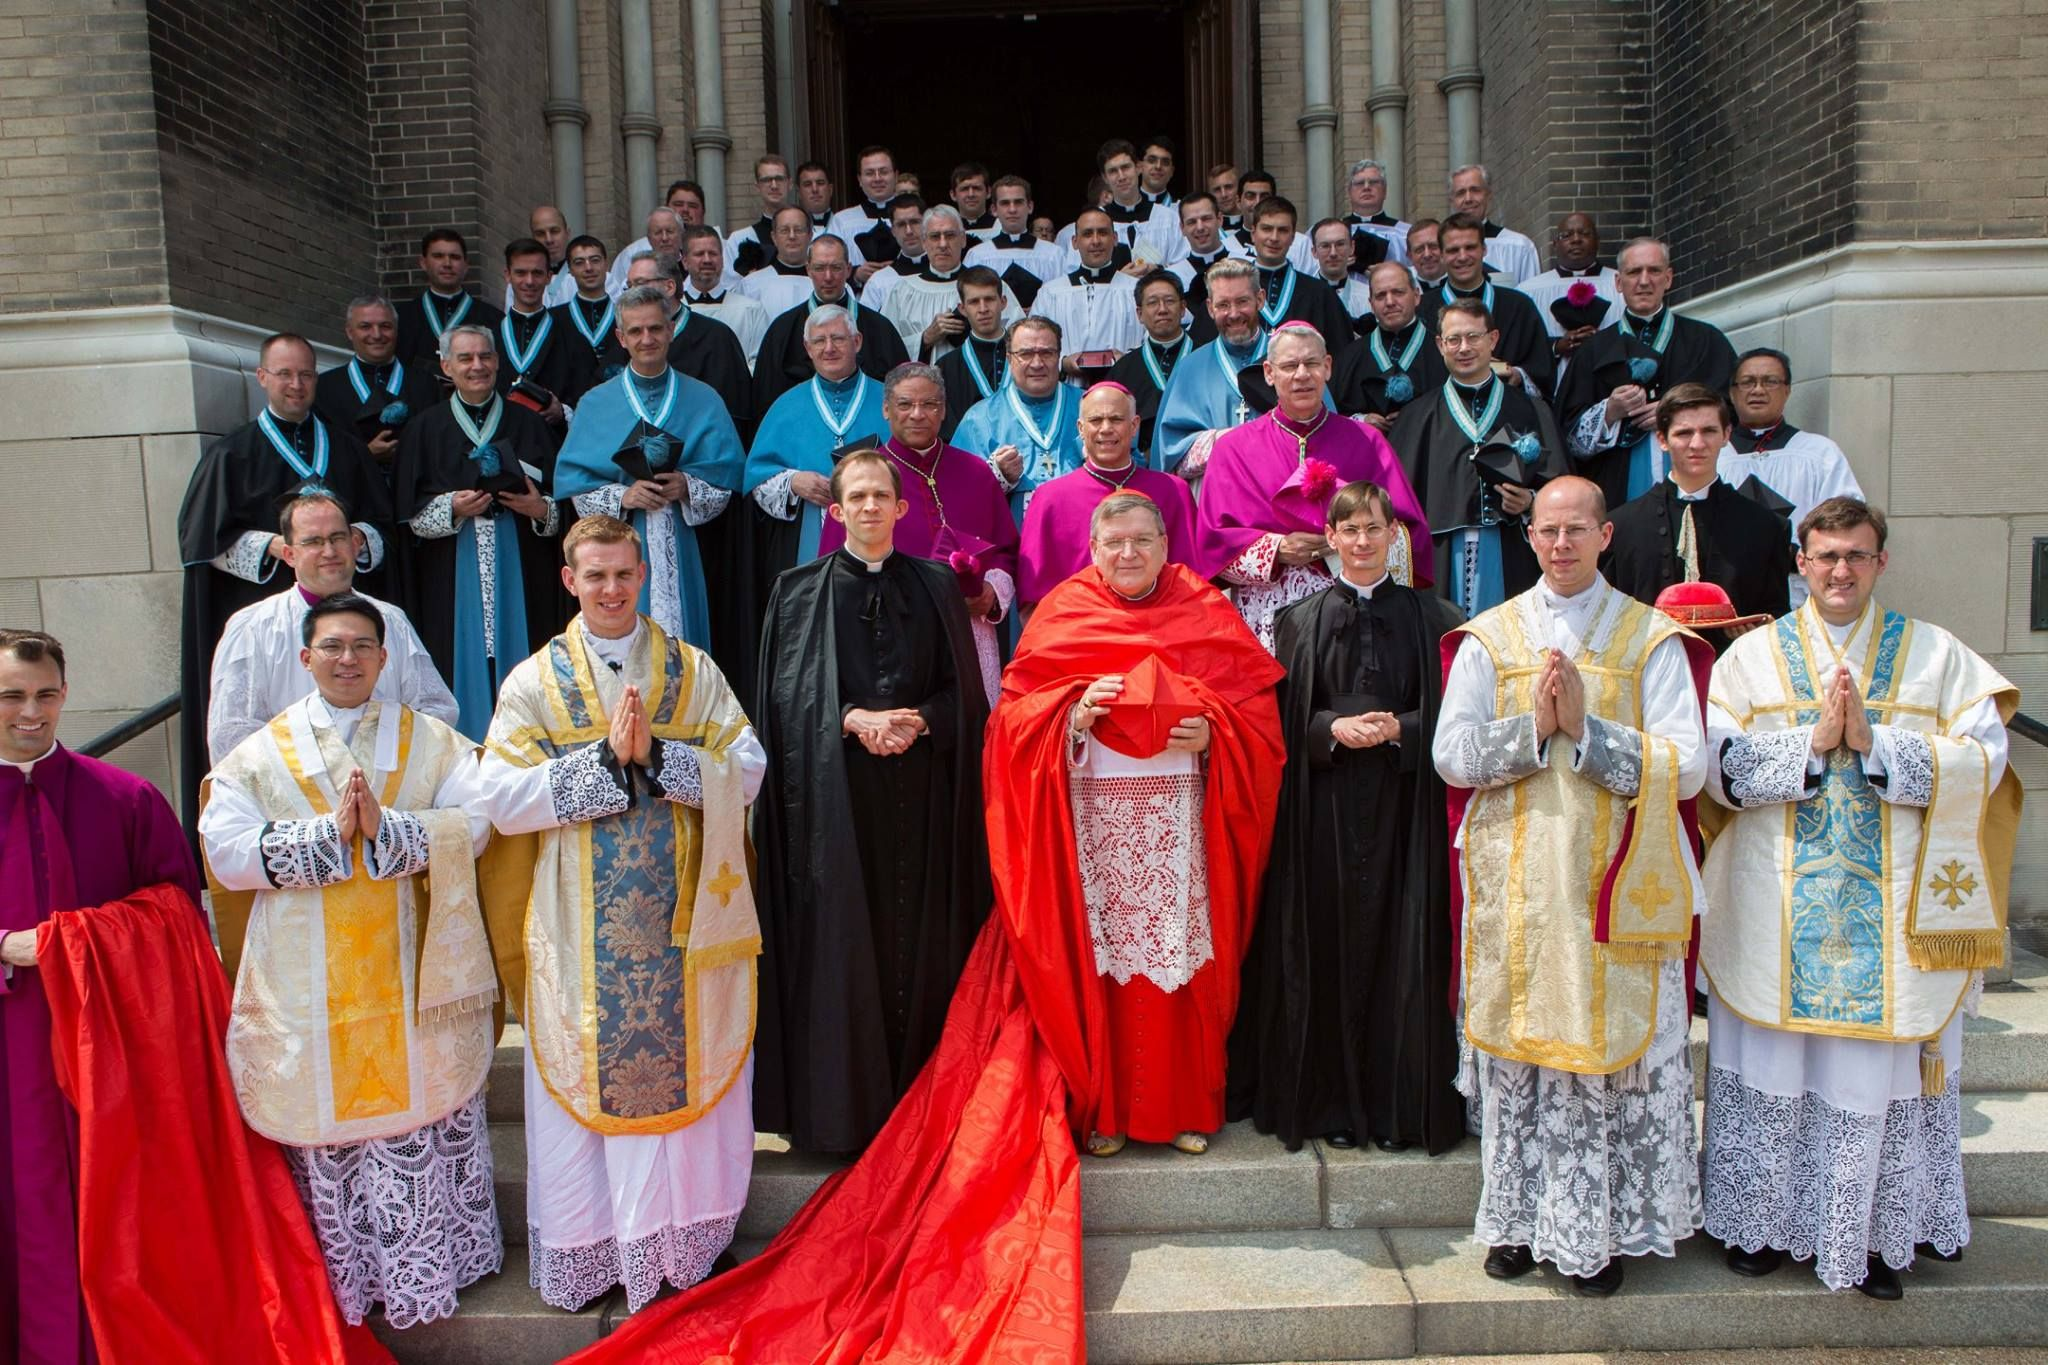 Deo gratias! On August 5, 2014, four new priests were